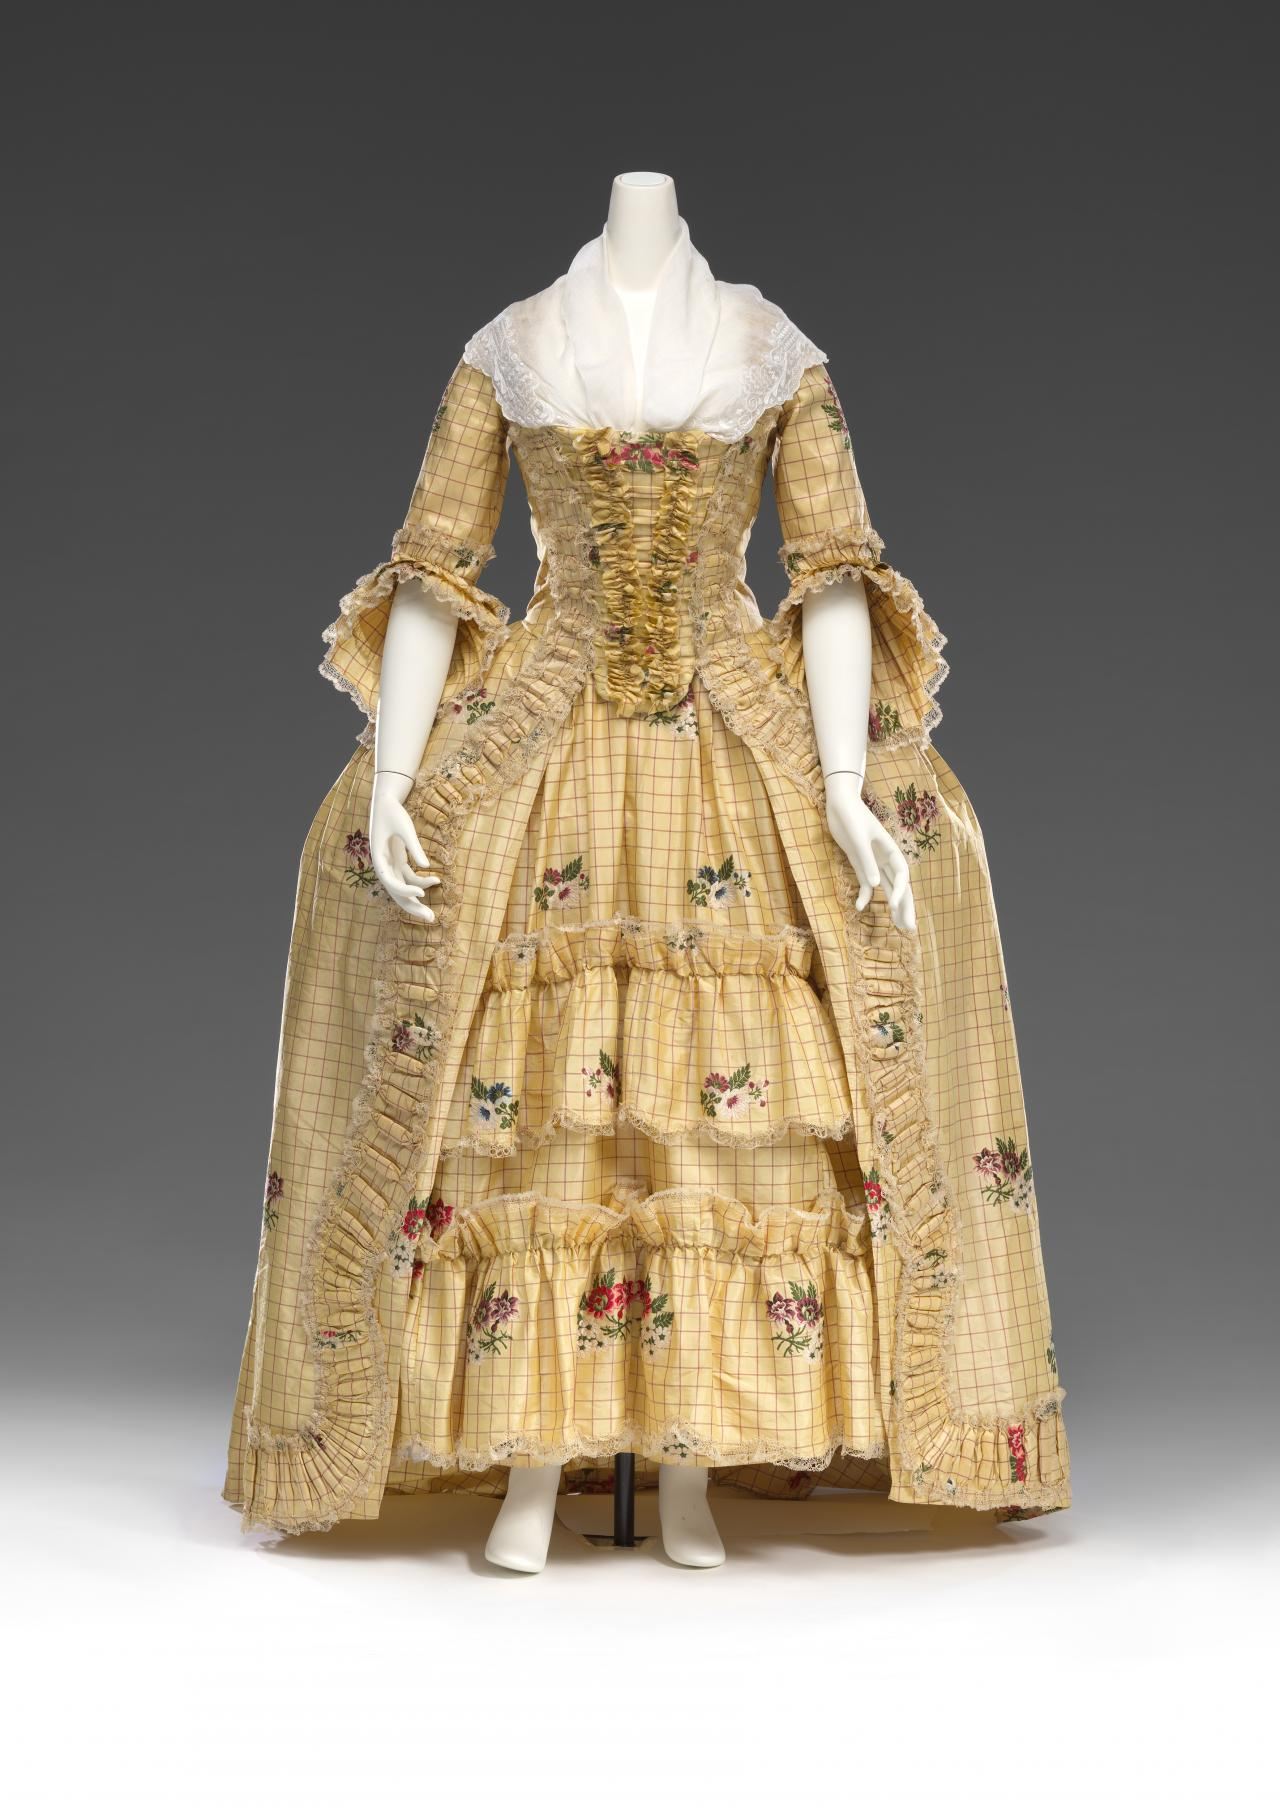 Dress (Open robe and petticoat)